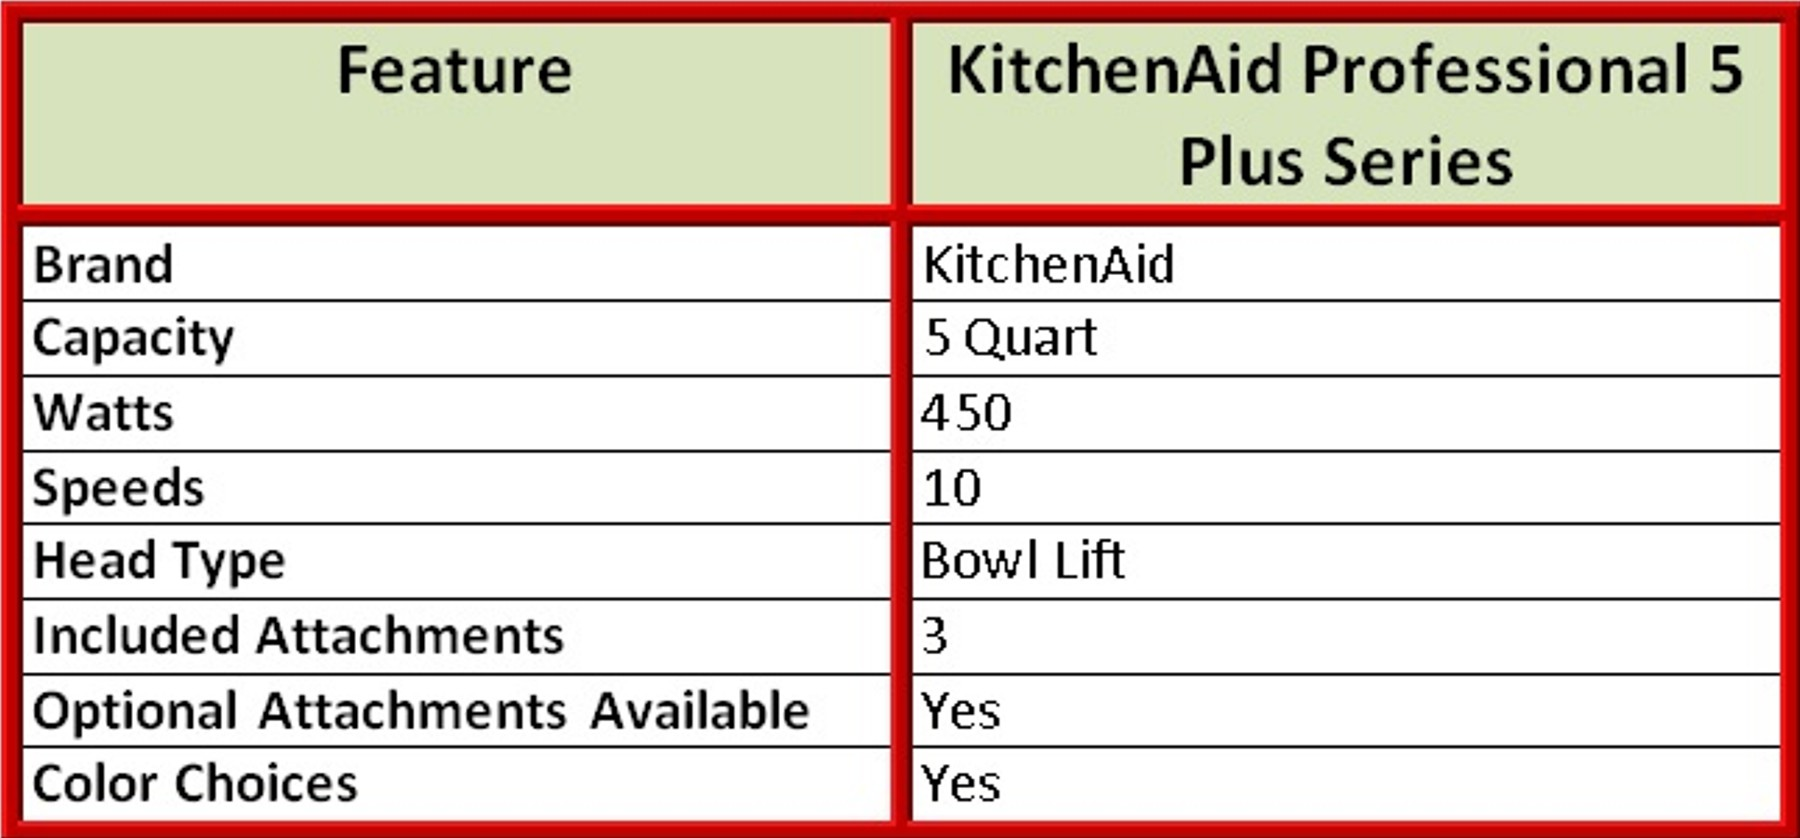 KitchenAid Professional 5 Plus Series Features